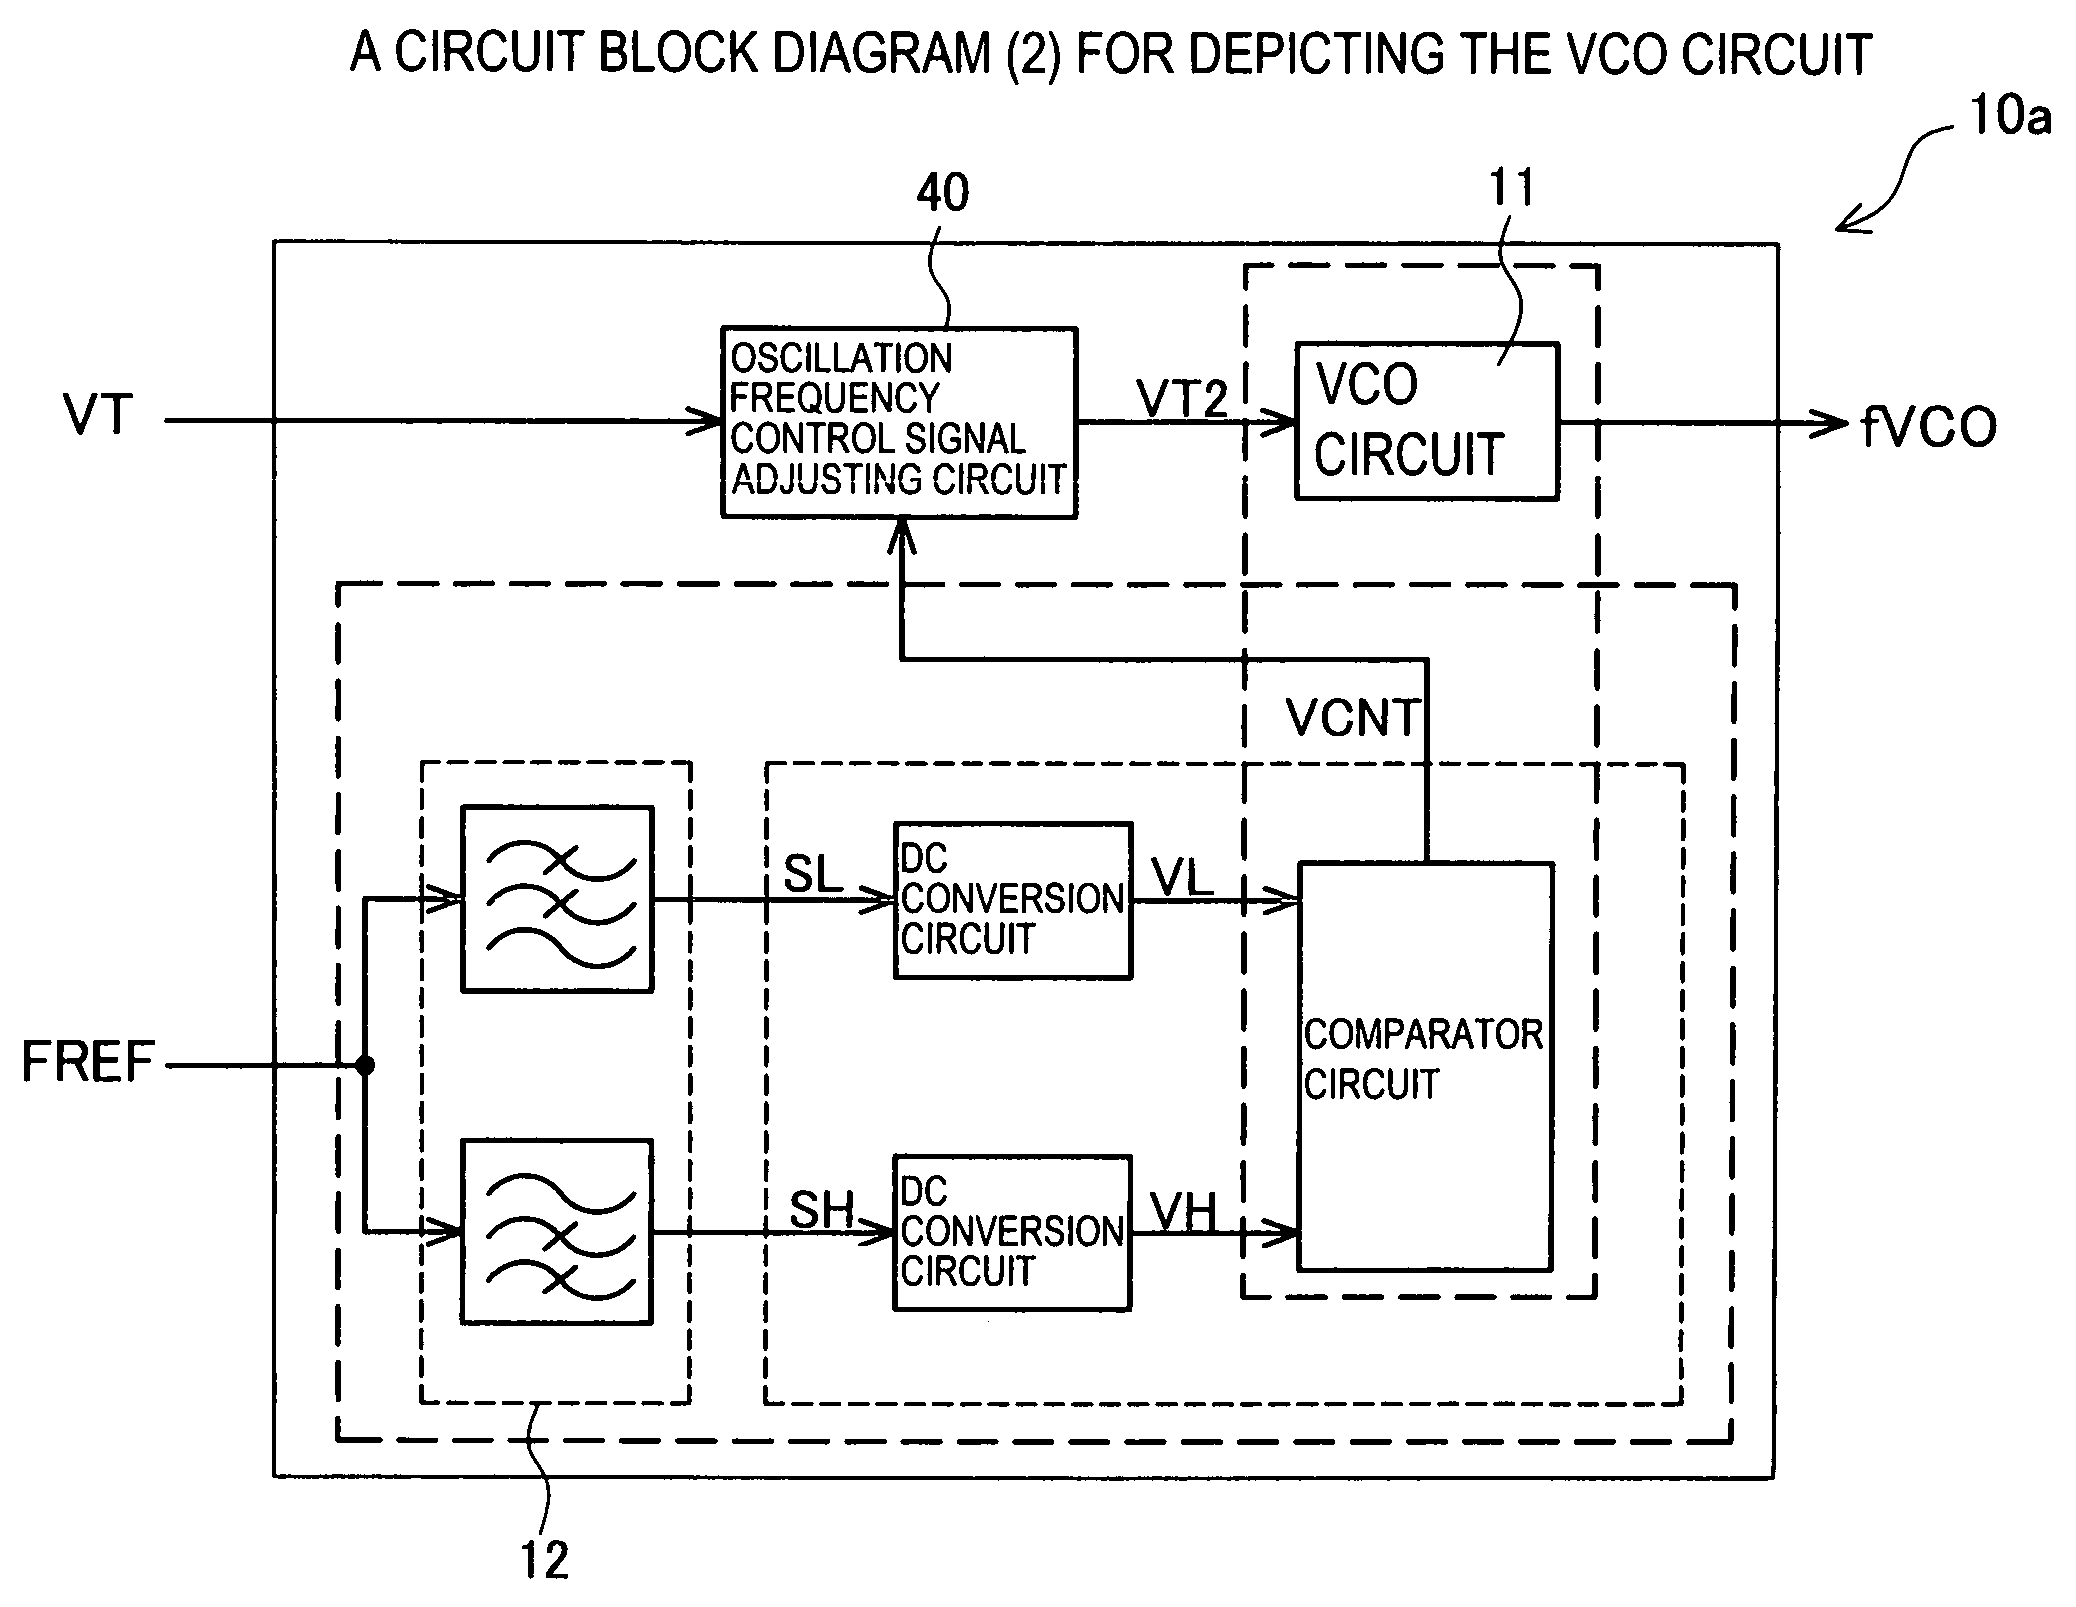 Patent Us7482882 Voltage Control Oscillation Circuit And Adjusting Comparator Circuits Schematic Drawing